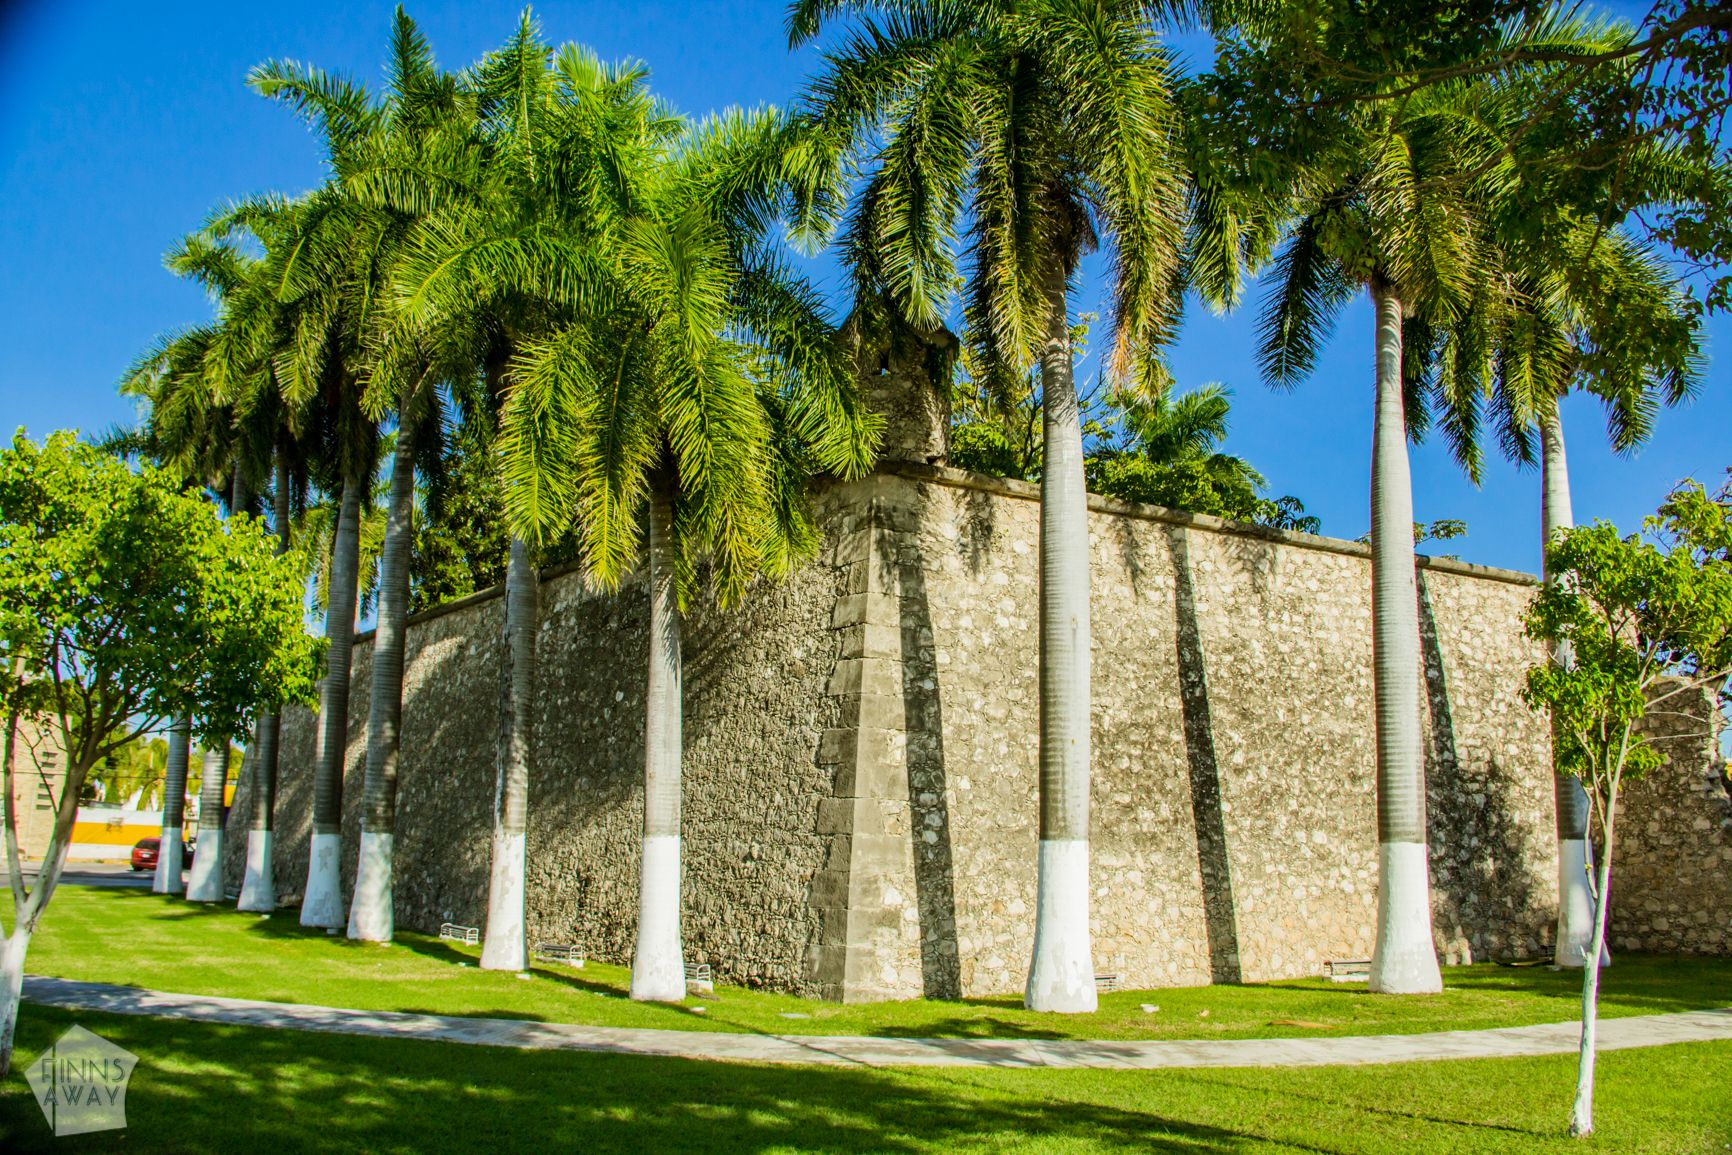 Botanical Garden in a bastion | Campeche in Yucatan Peninsula, Mexico, is famous for a walled historical center with colonial architecture | FinnsAway Travel Blog